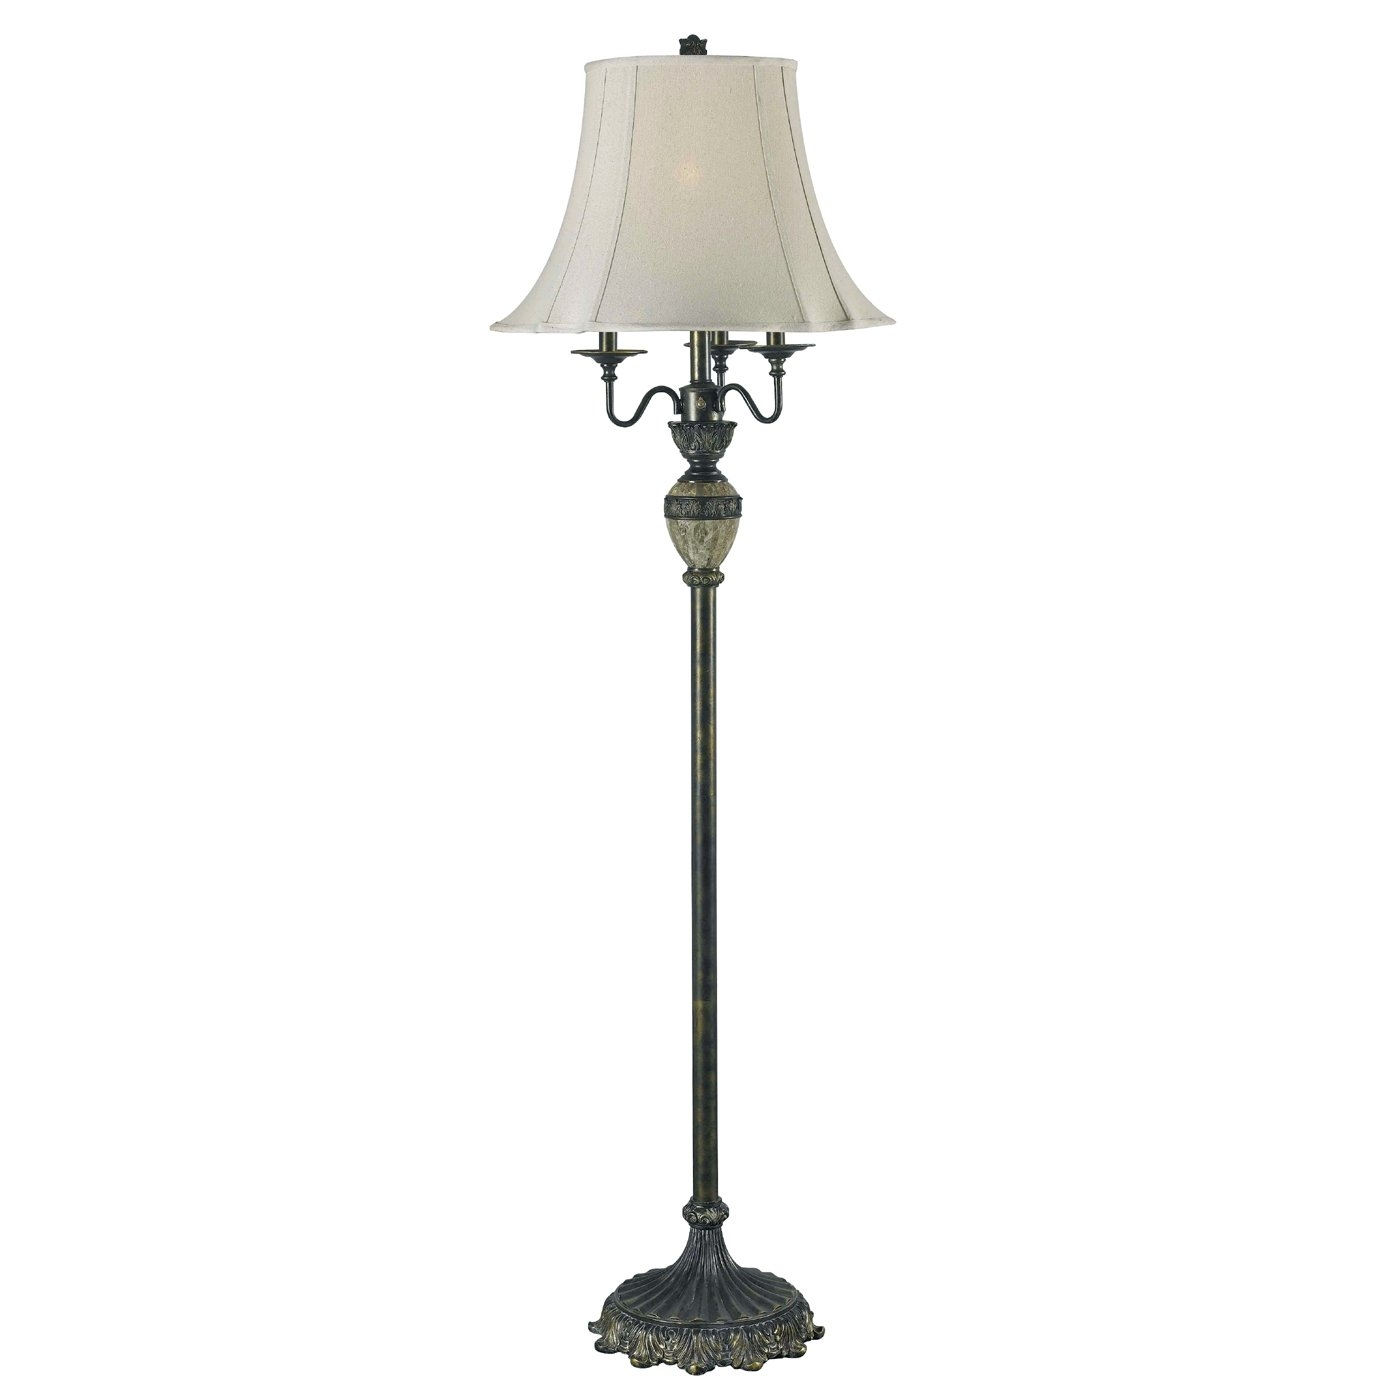 Collection Candelabra Floor Lamp Foter